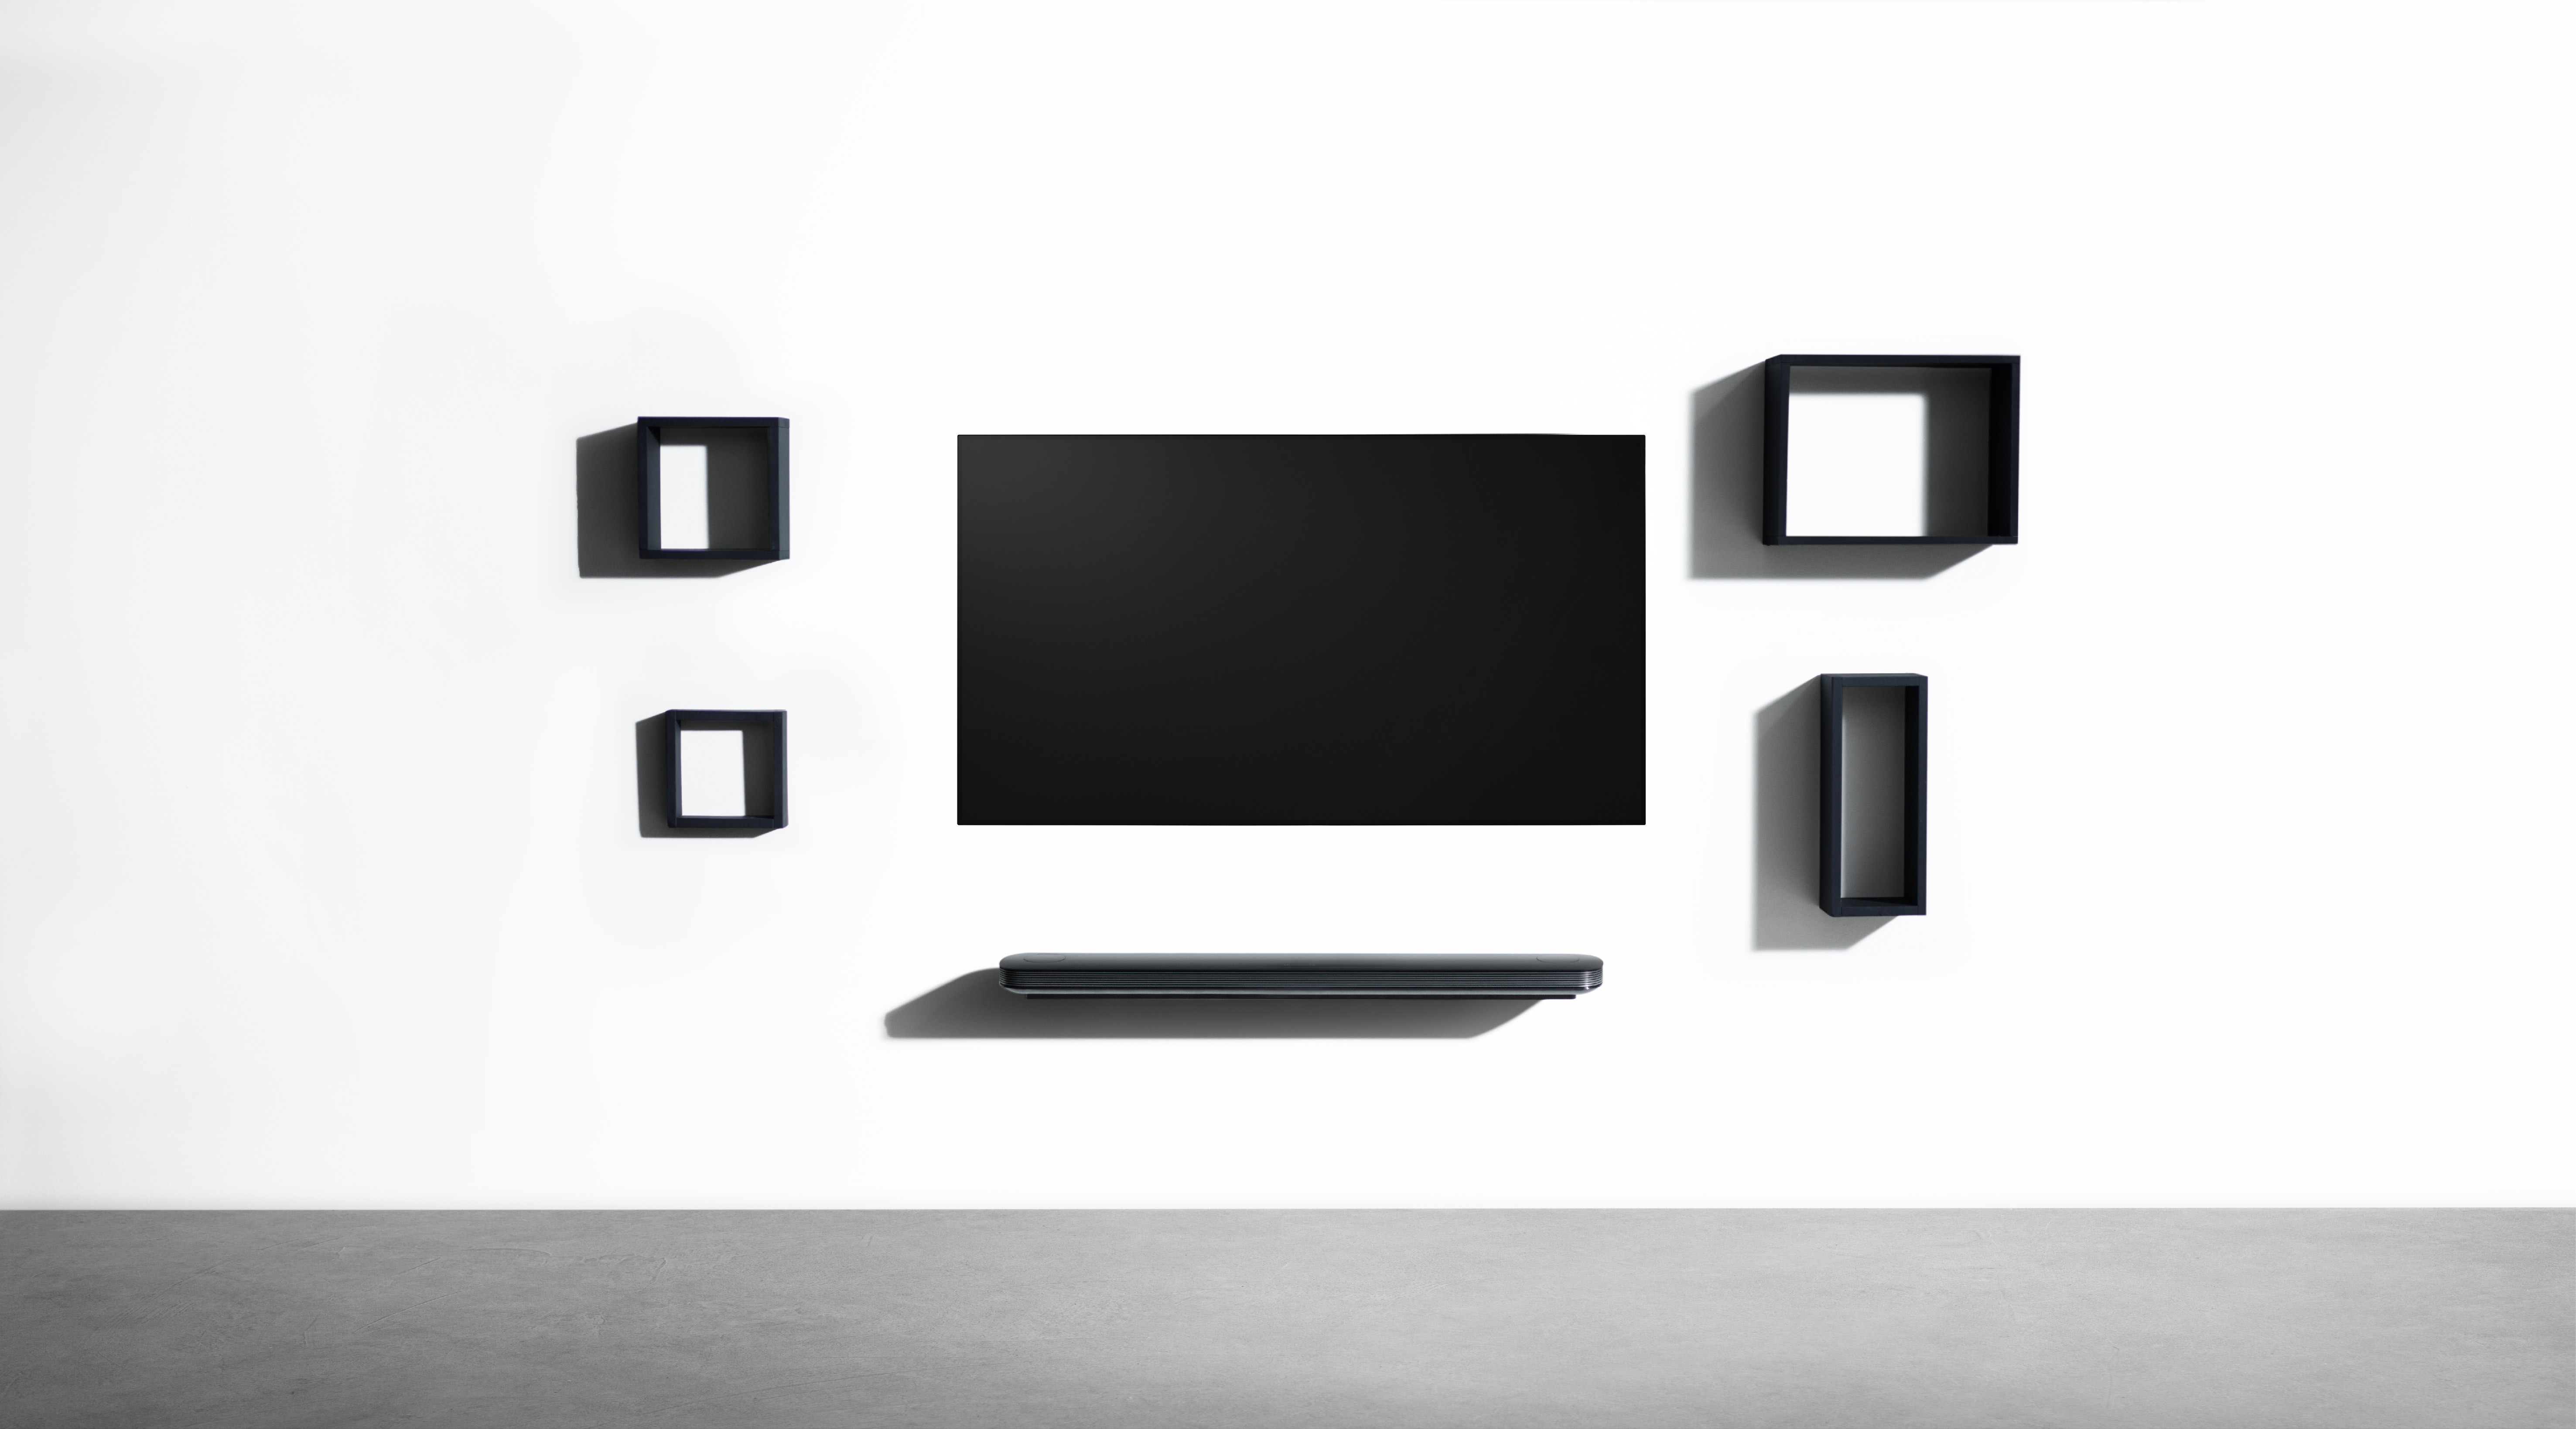 An LG SIGNATURE OLED TV W with a darkened screen hangs against the wall with black frames mounted decoratively around it